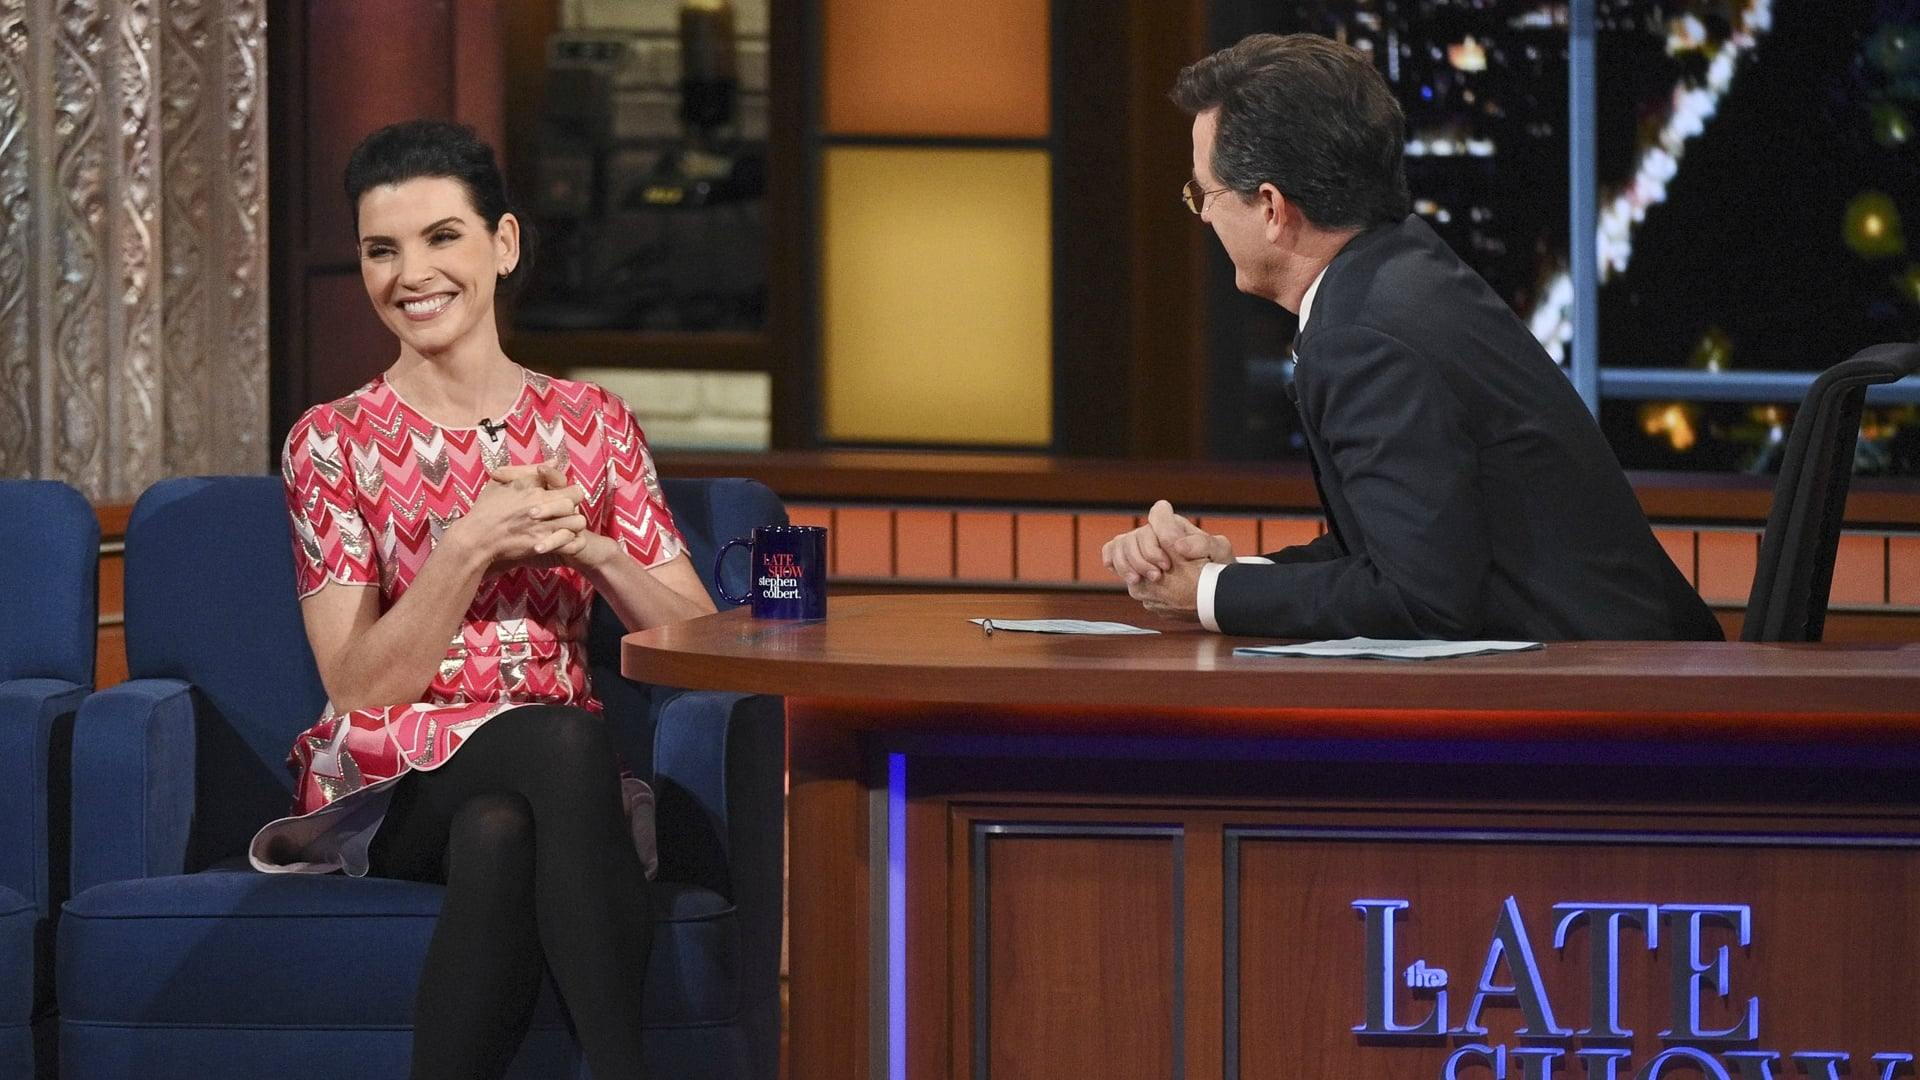 The Late Show with Stephen Colbert Season 1 :Episode 32  Julianna Margulies, Jonathan Franzen, Alabama Shakes